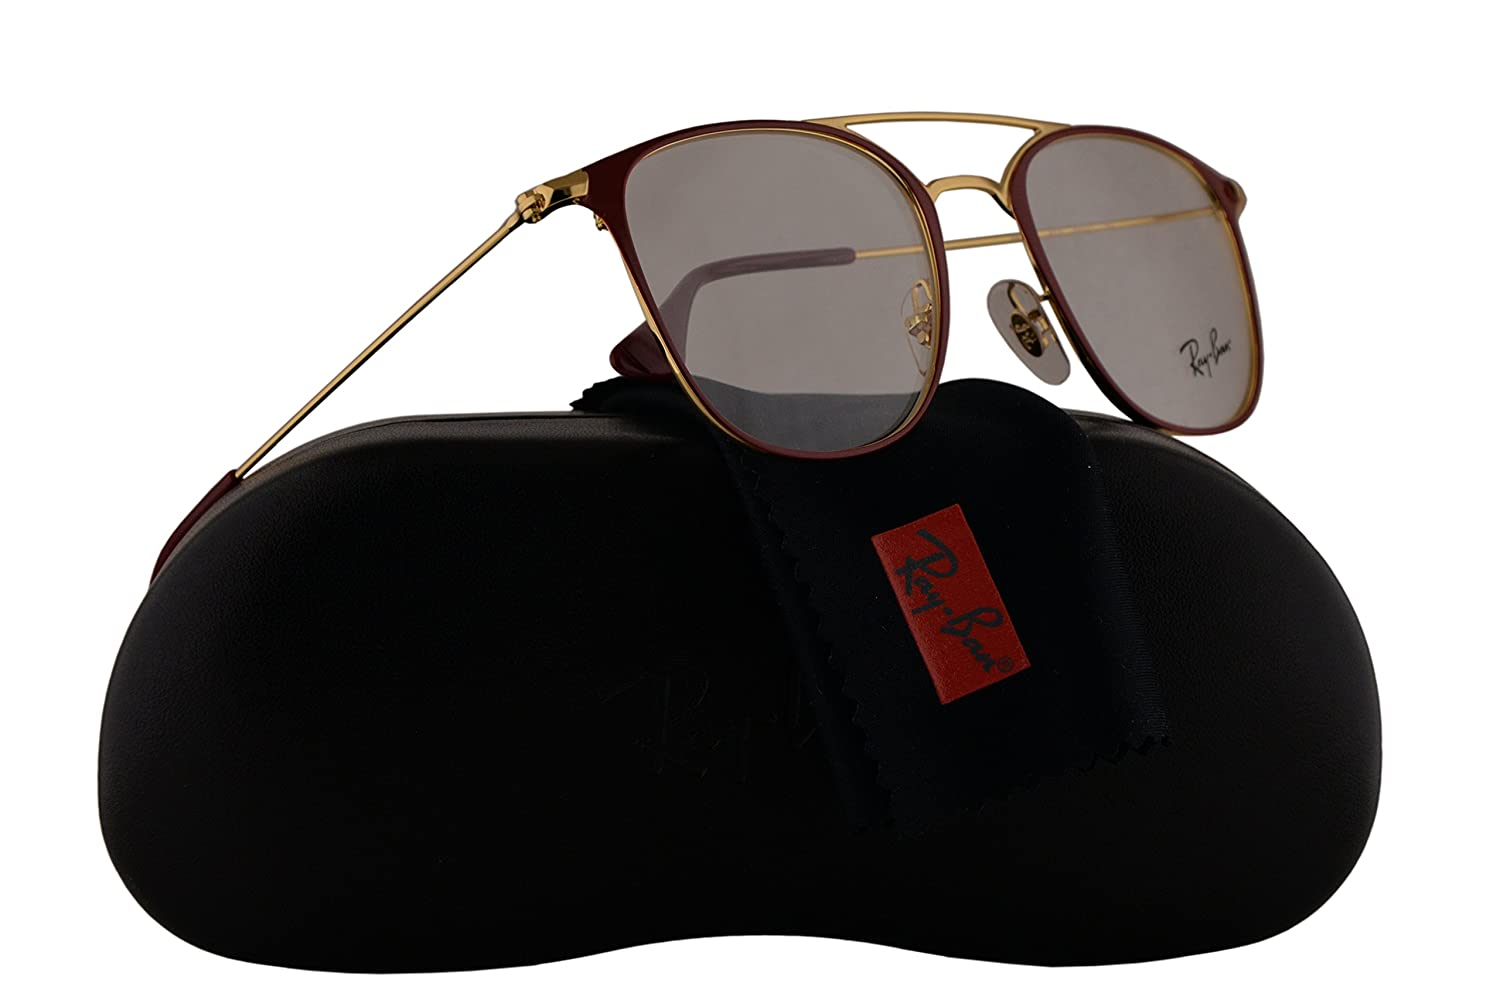 ac5545d393 Ray Ban RX6377 Eyeglasses 48-21-140 Gold Shiny Bordeaux w Demo Clear Lens  2910 RB6377 RB 6377 RX 6377  Amazon.co.uk  Clothing